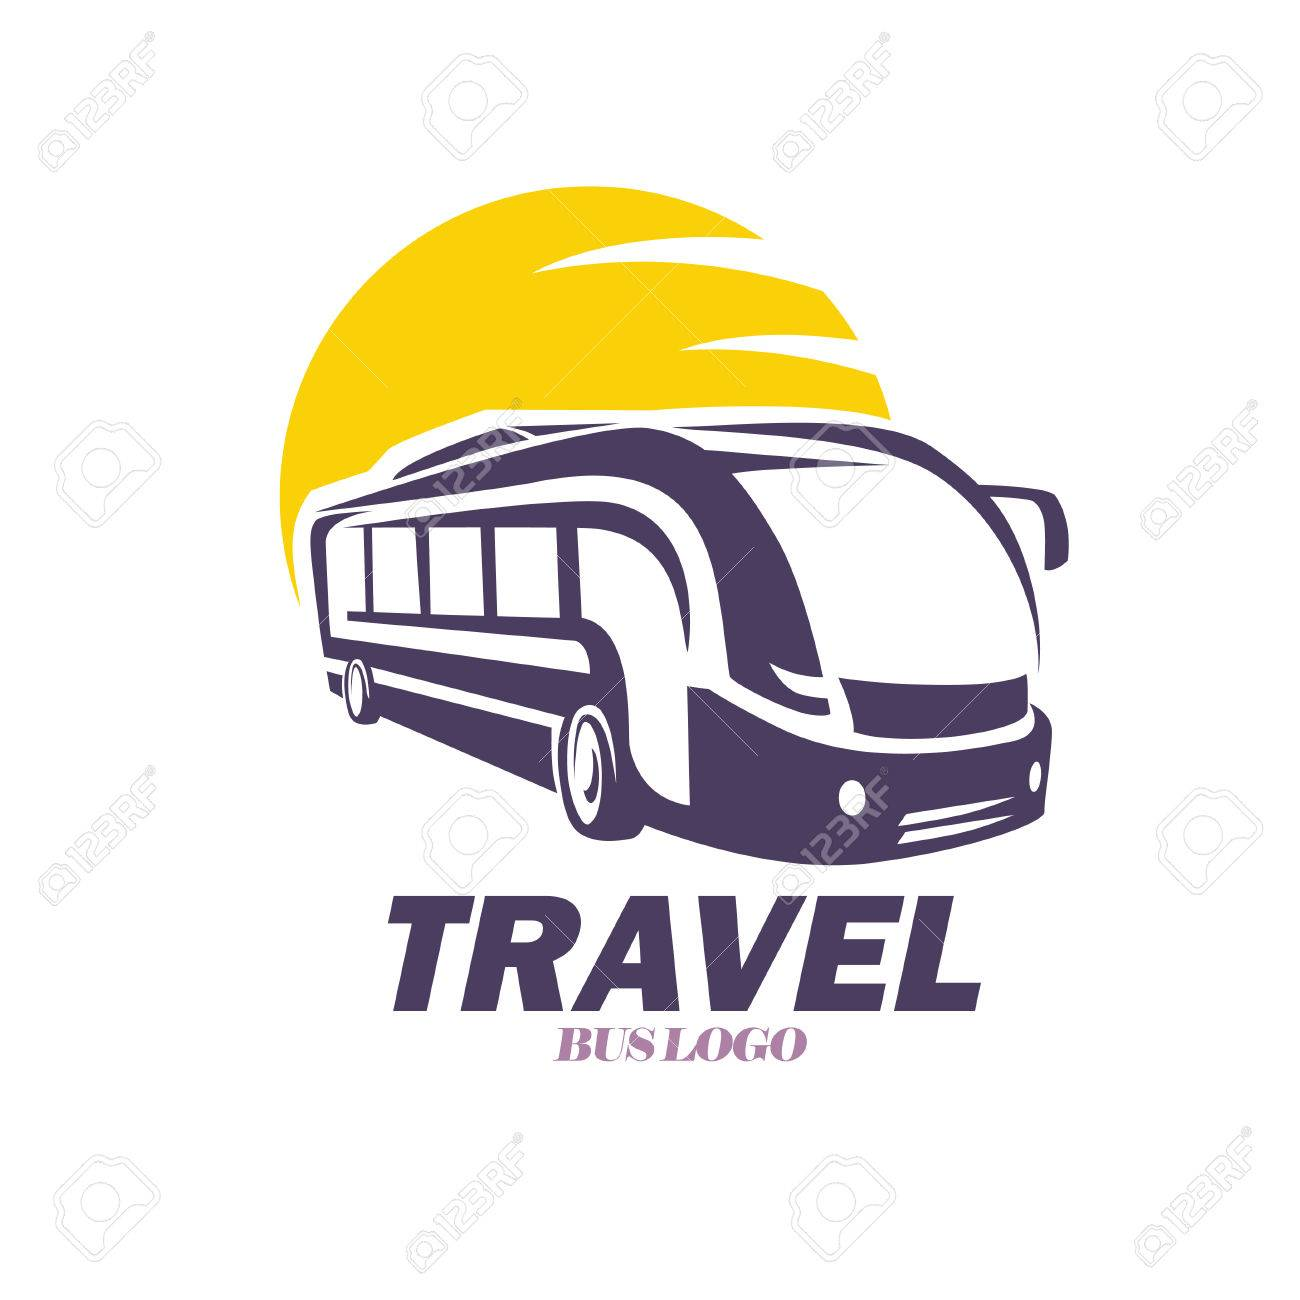 modern bus symbol stylized icon for logo or emblem template royalty